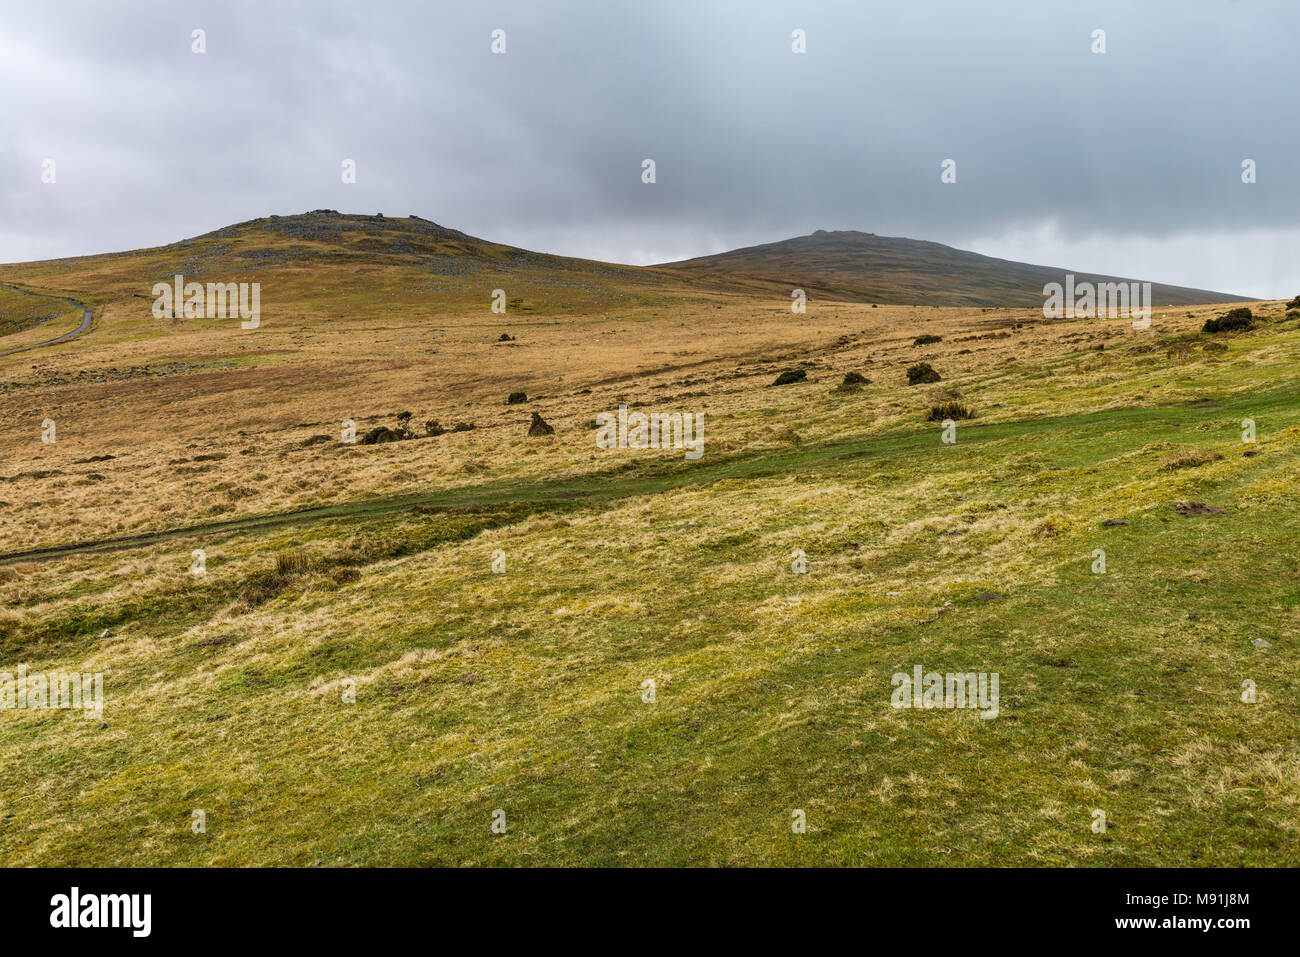 West Mill Tor, left and Yes Tor, right, in Dartmoor National Park, Devon, UK. - Stock Image